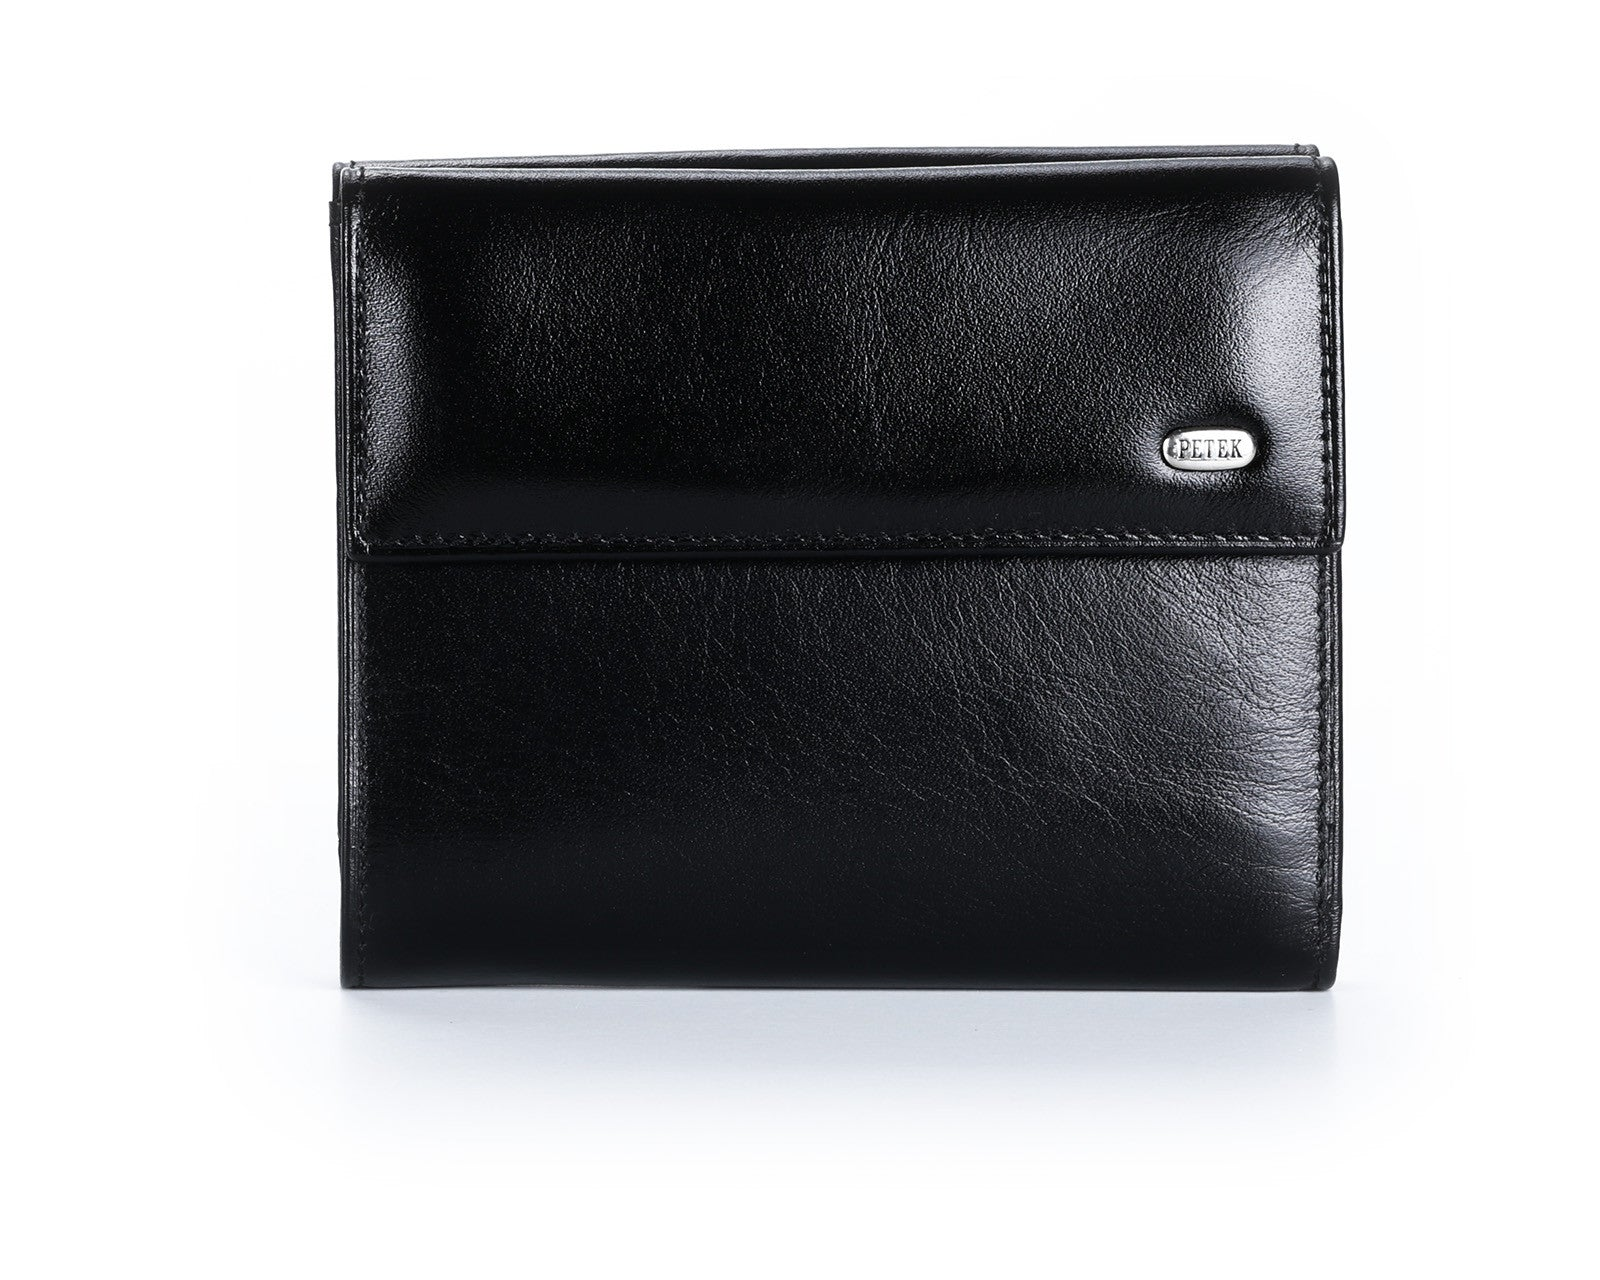 335 Solid Black, Petek 1855 Women's Leather Wallet